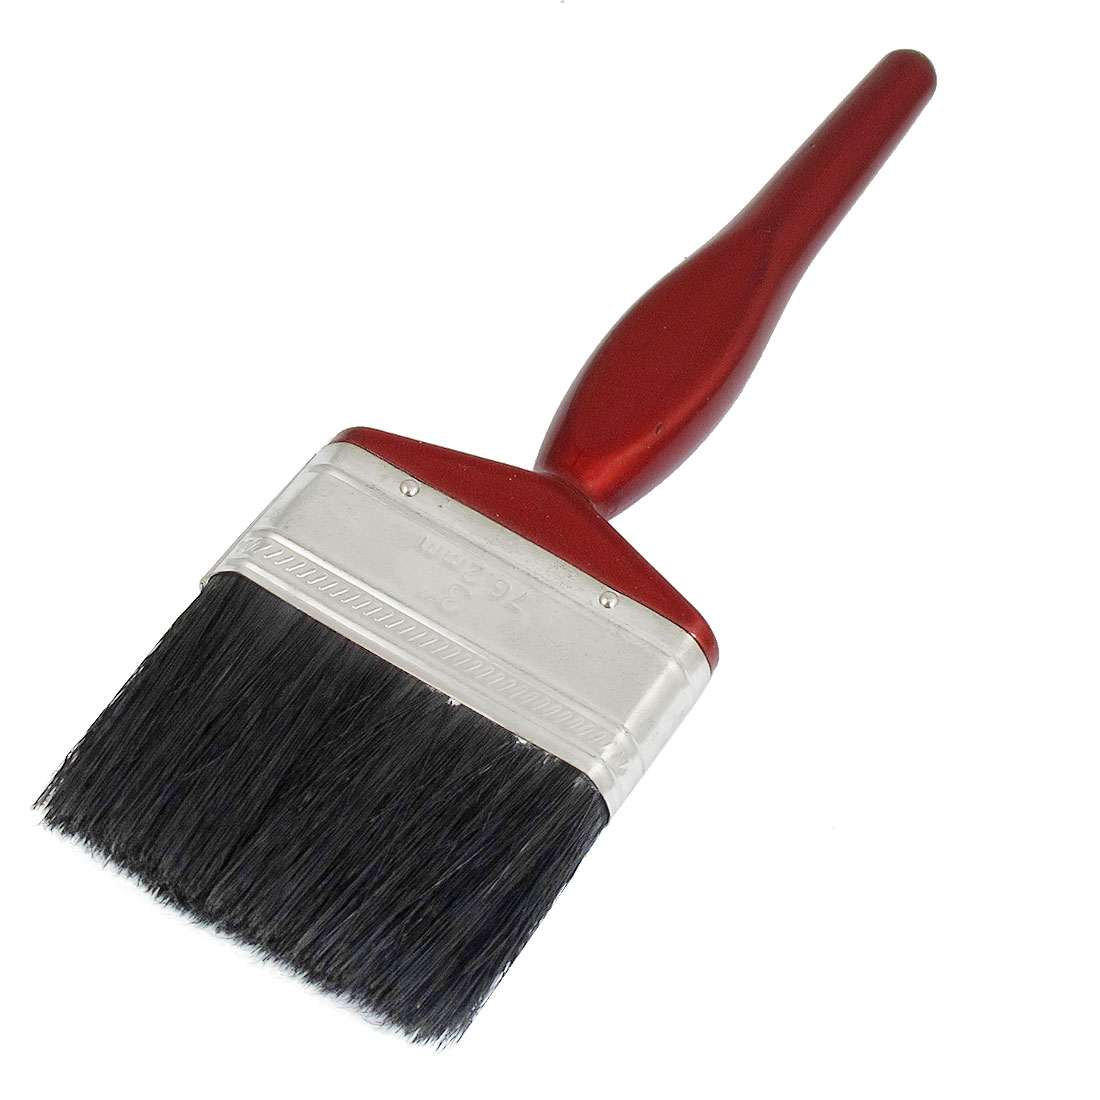 "3"" Width Burgundy Wooden Handle Black Faux Bristle Filament Paint Brush"